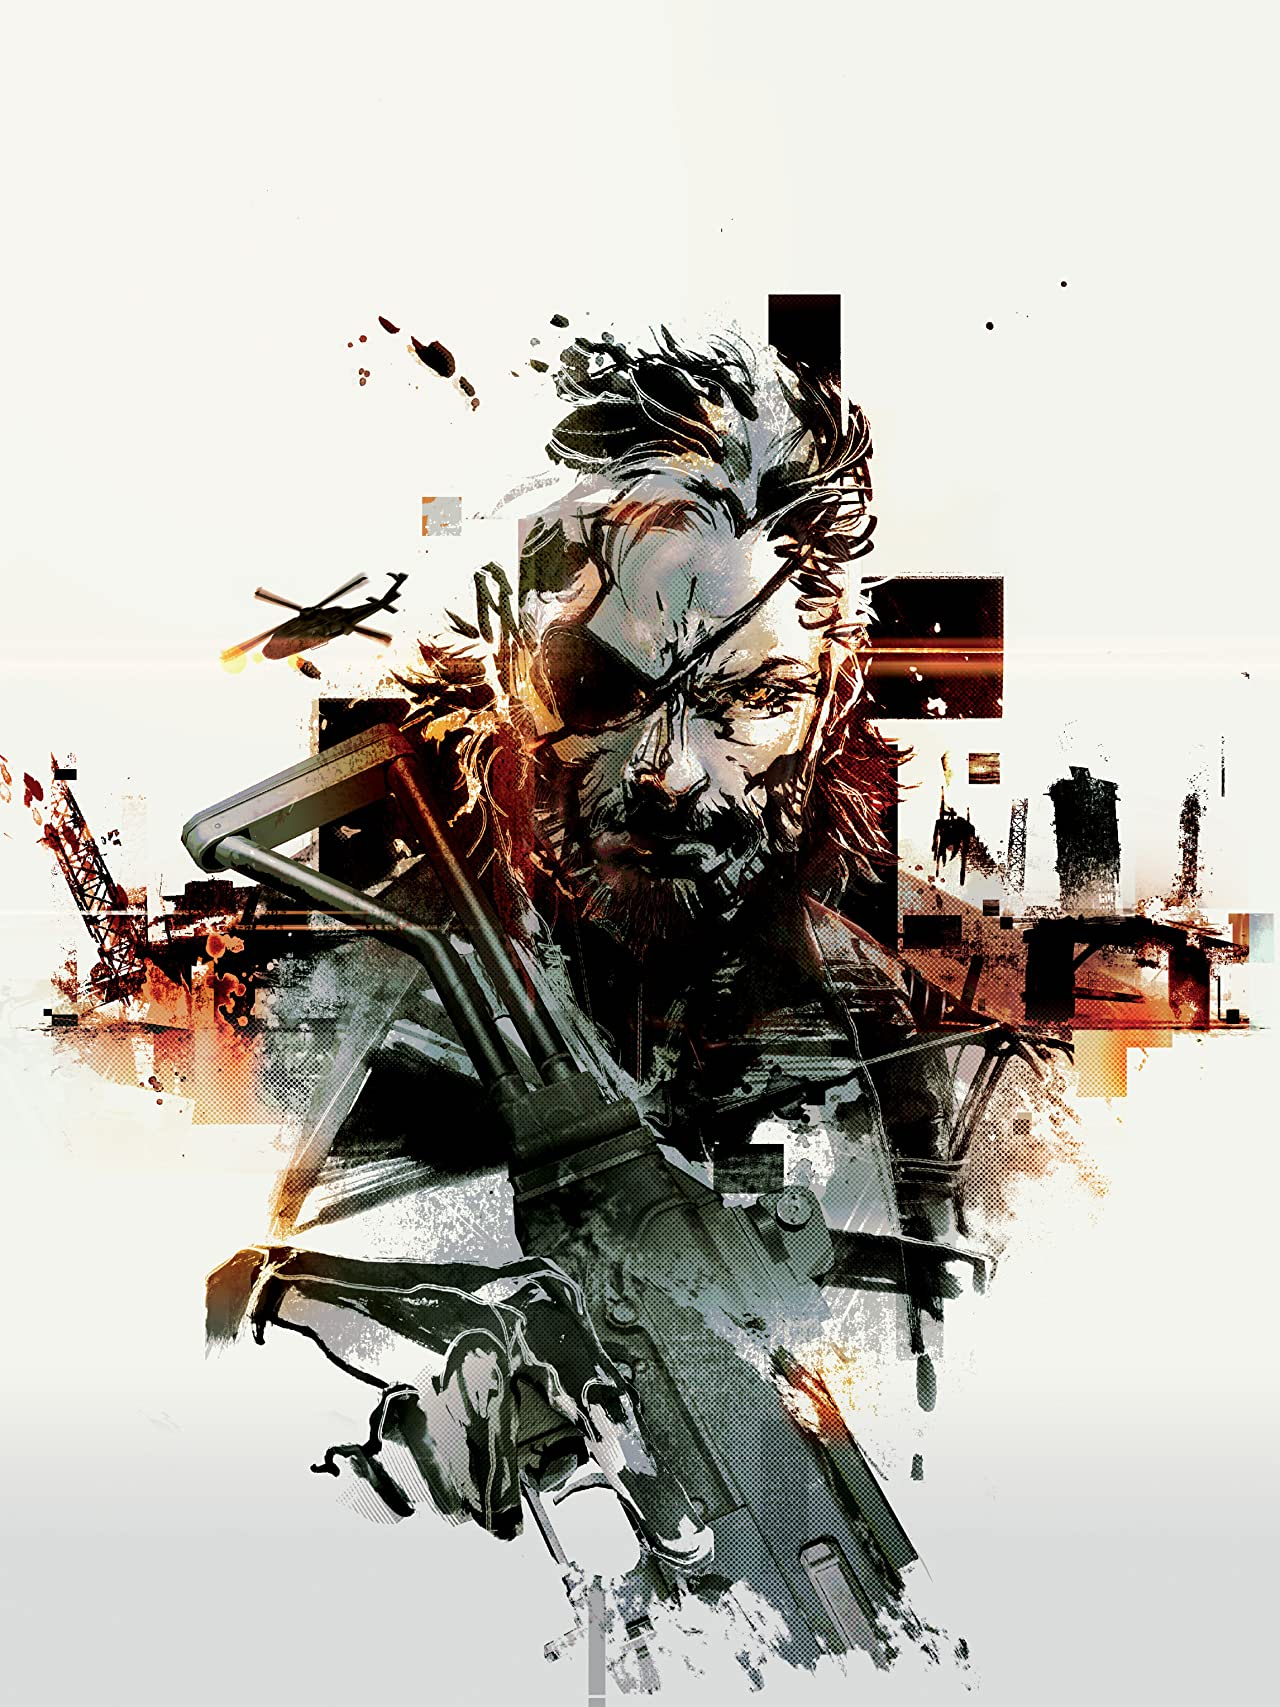 the art of metal gear solid v comics by comixology